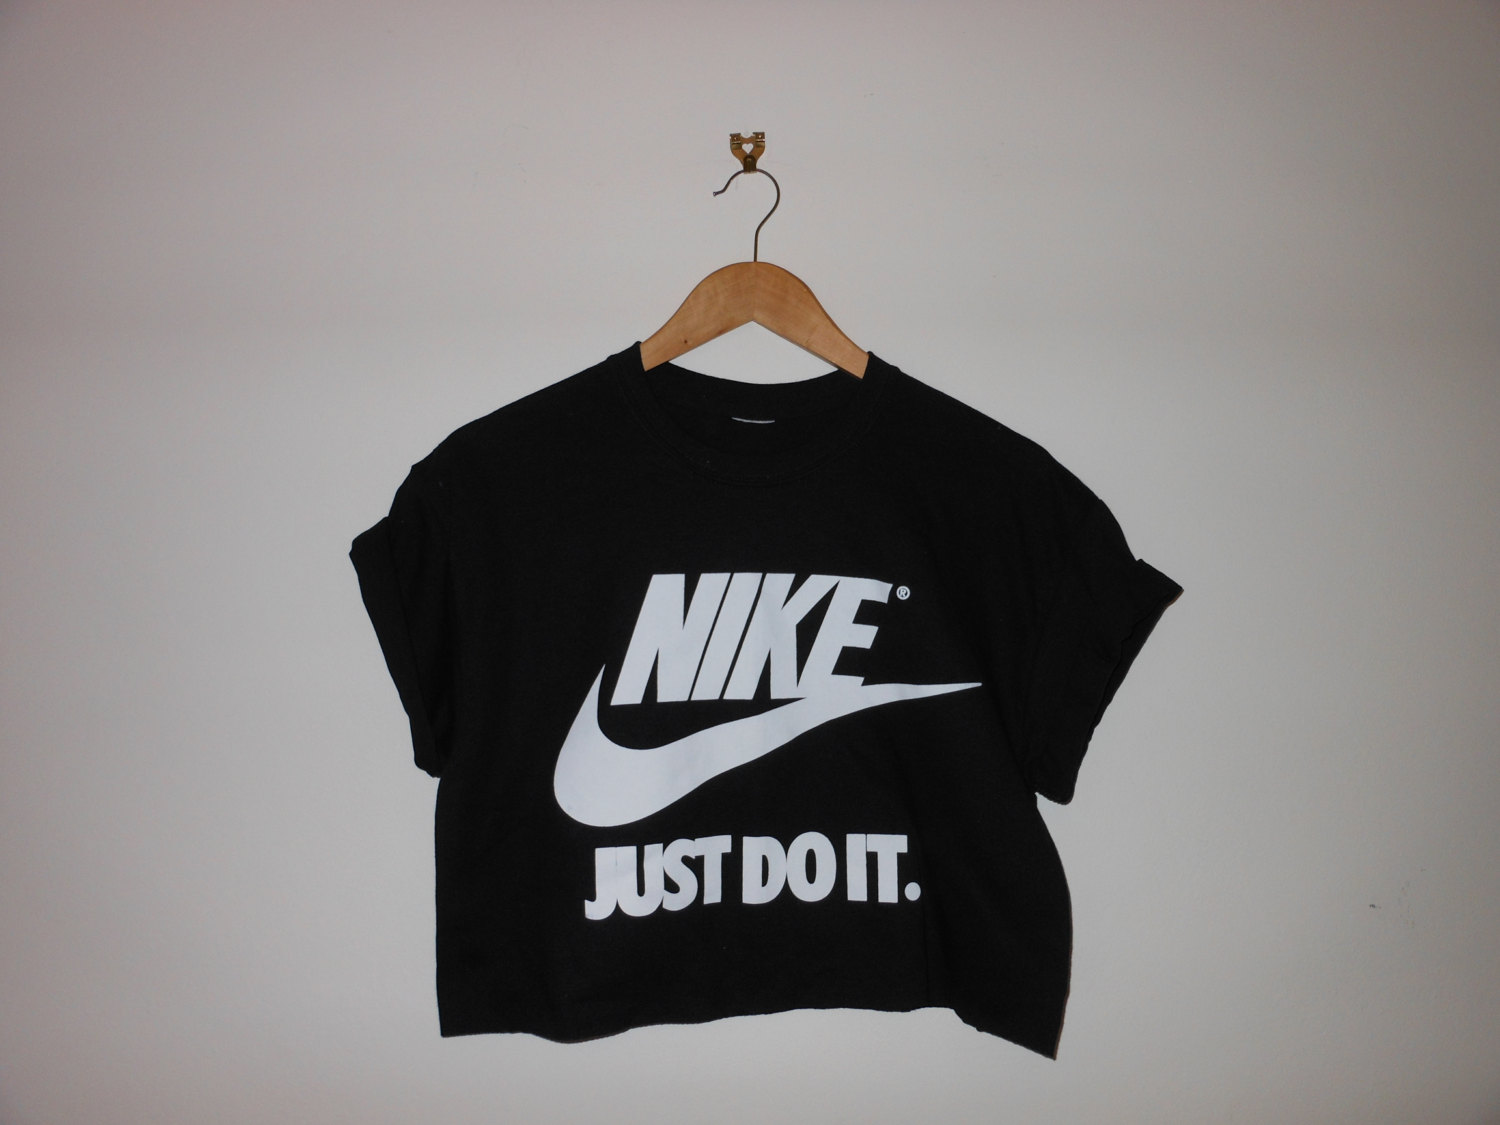 classic nike just do it swag style crop top tshirt fresh boss dope celebrity festival clothing. Black Bedroom Furniture Sets. Home Design Ideas